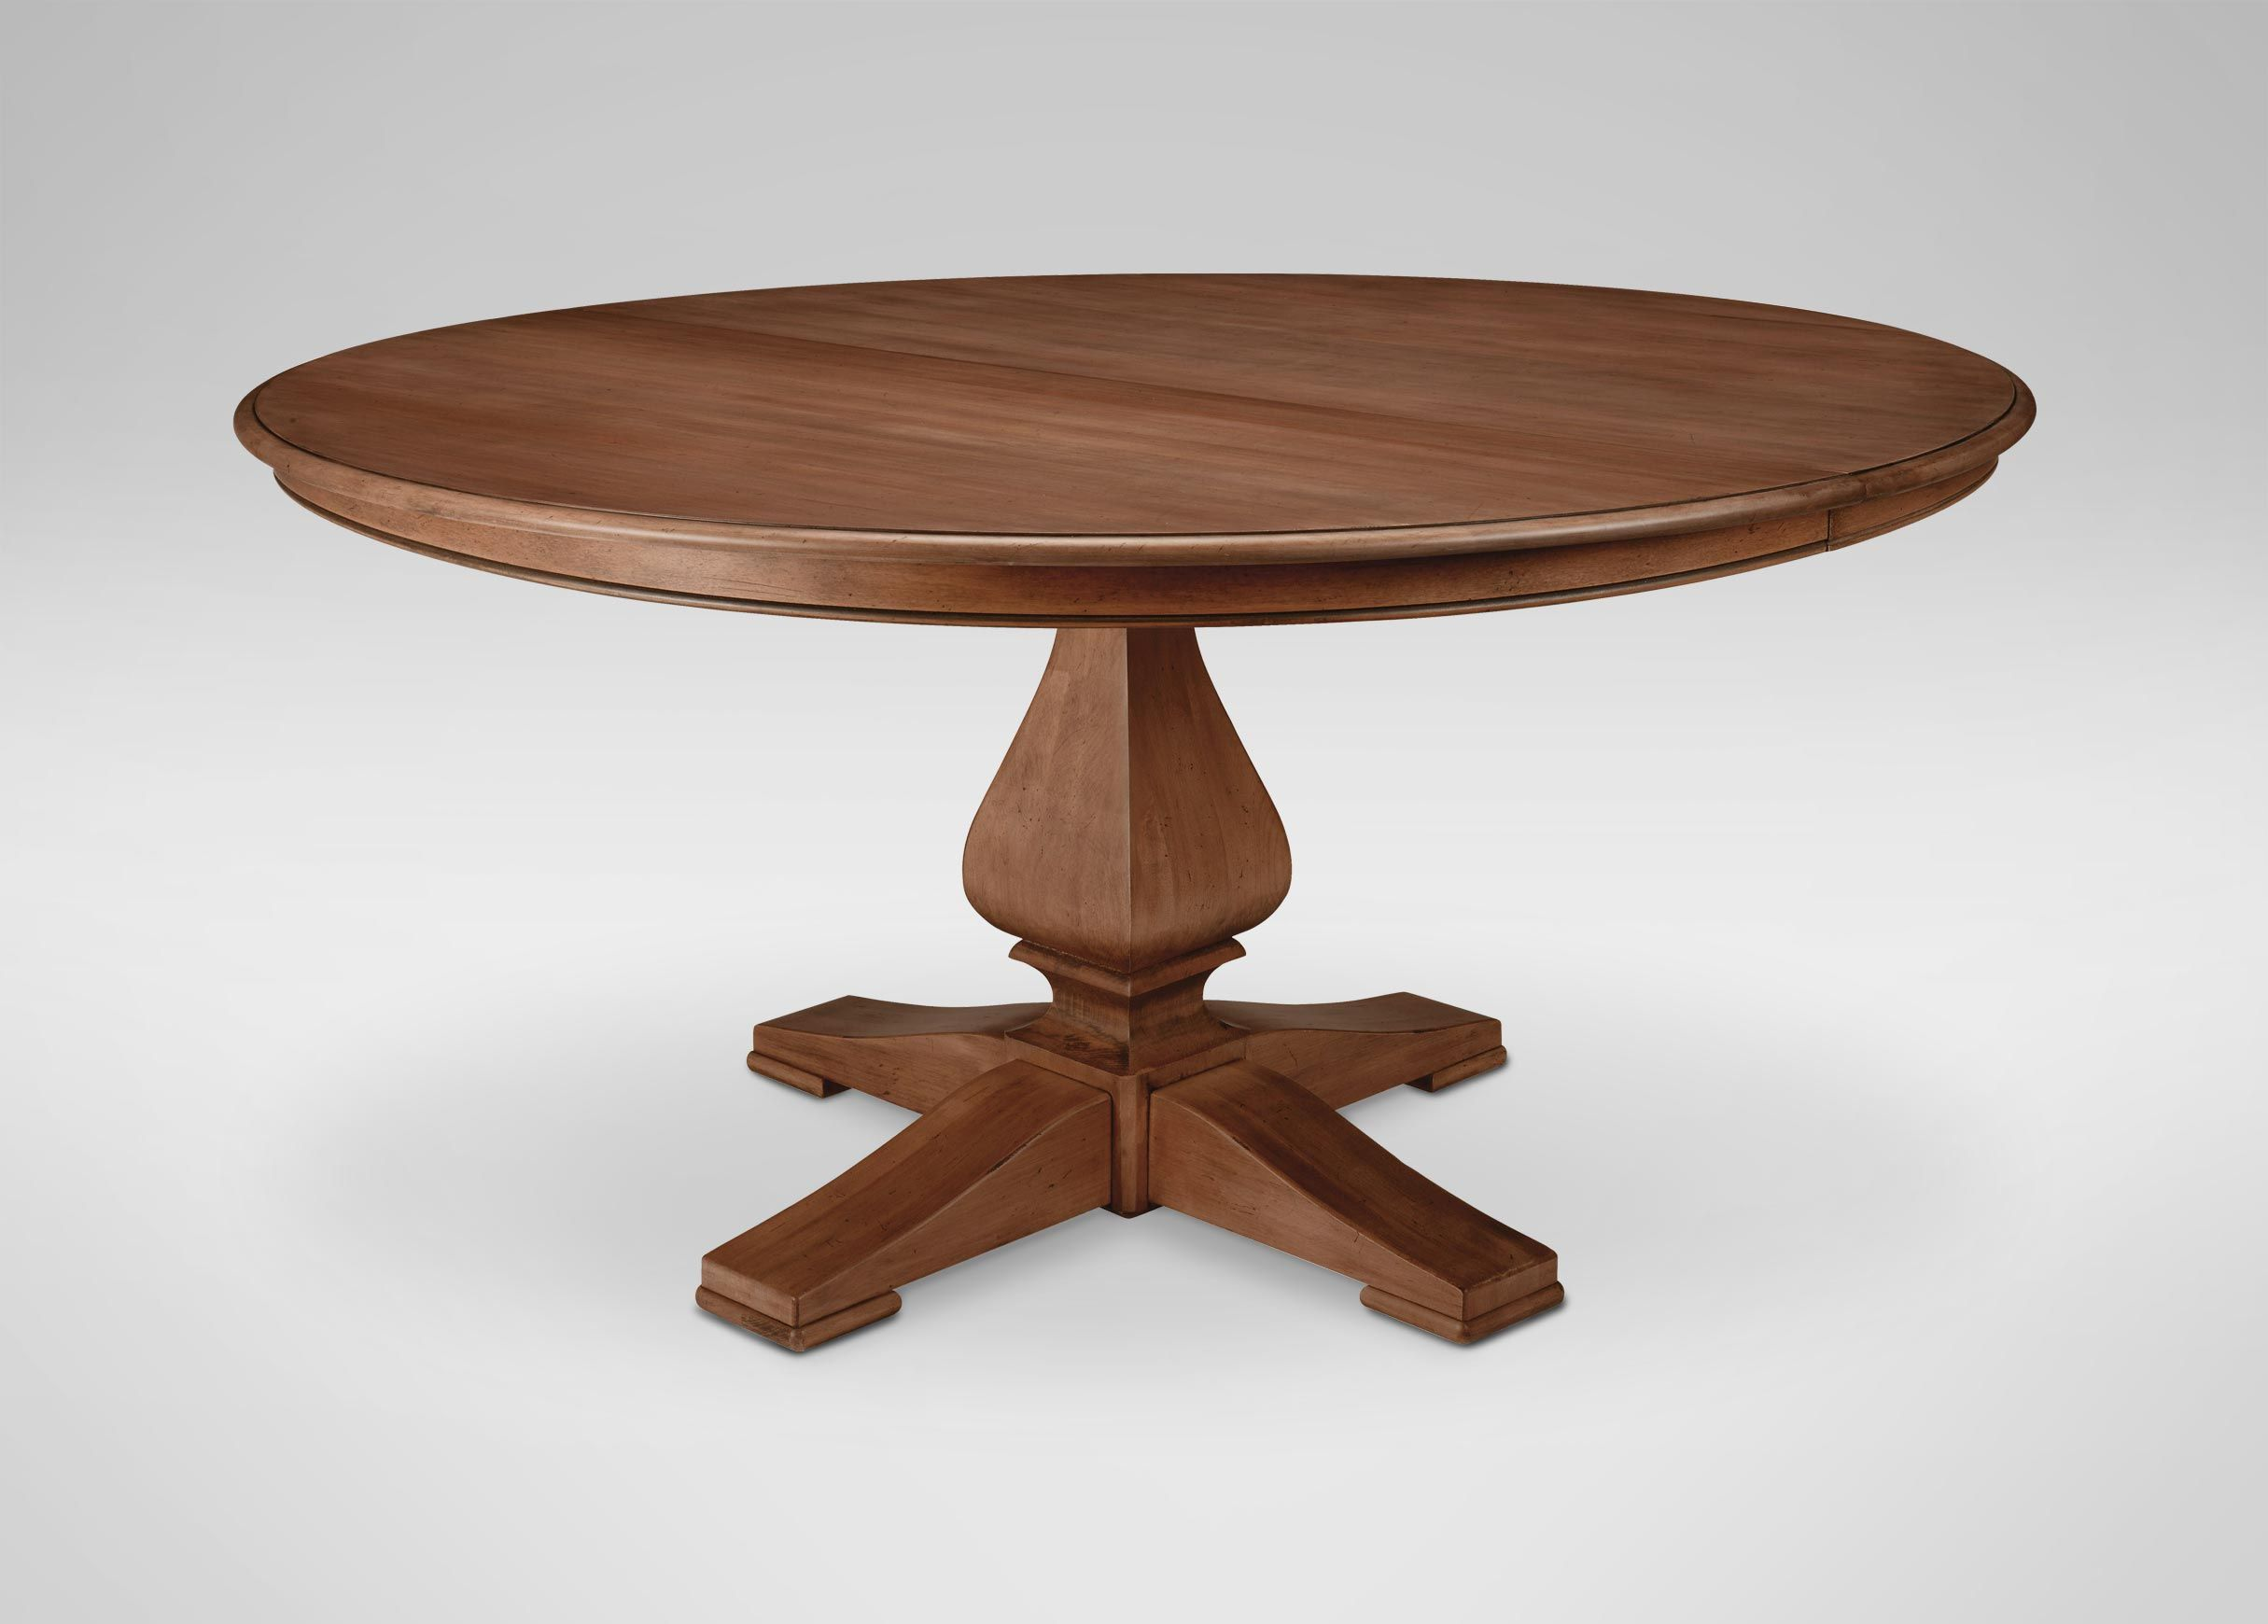 Ethan Allen Cameron Round Dining Table 2 389 00 Dimensions 60